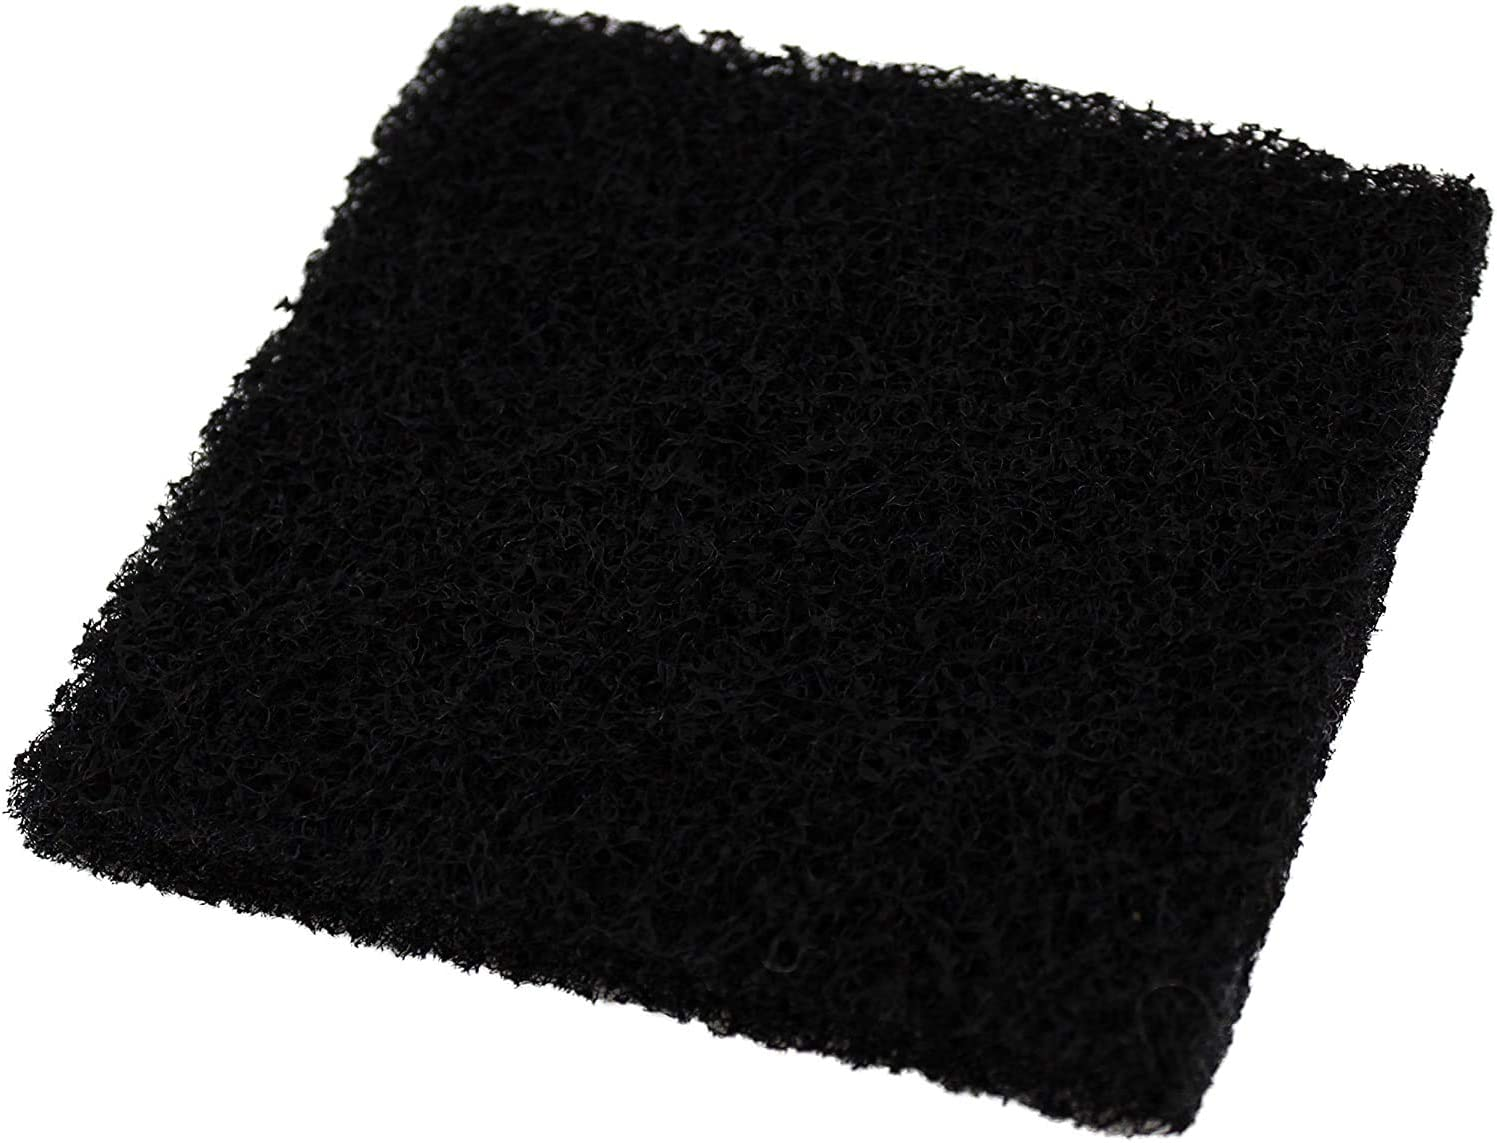 AF Trash Compactor Air Filter Compatible With Whirlpool Fits AP6009134 4151750